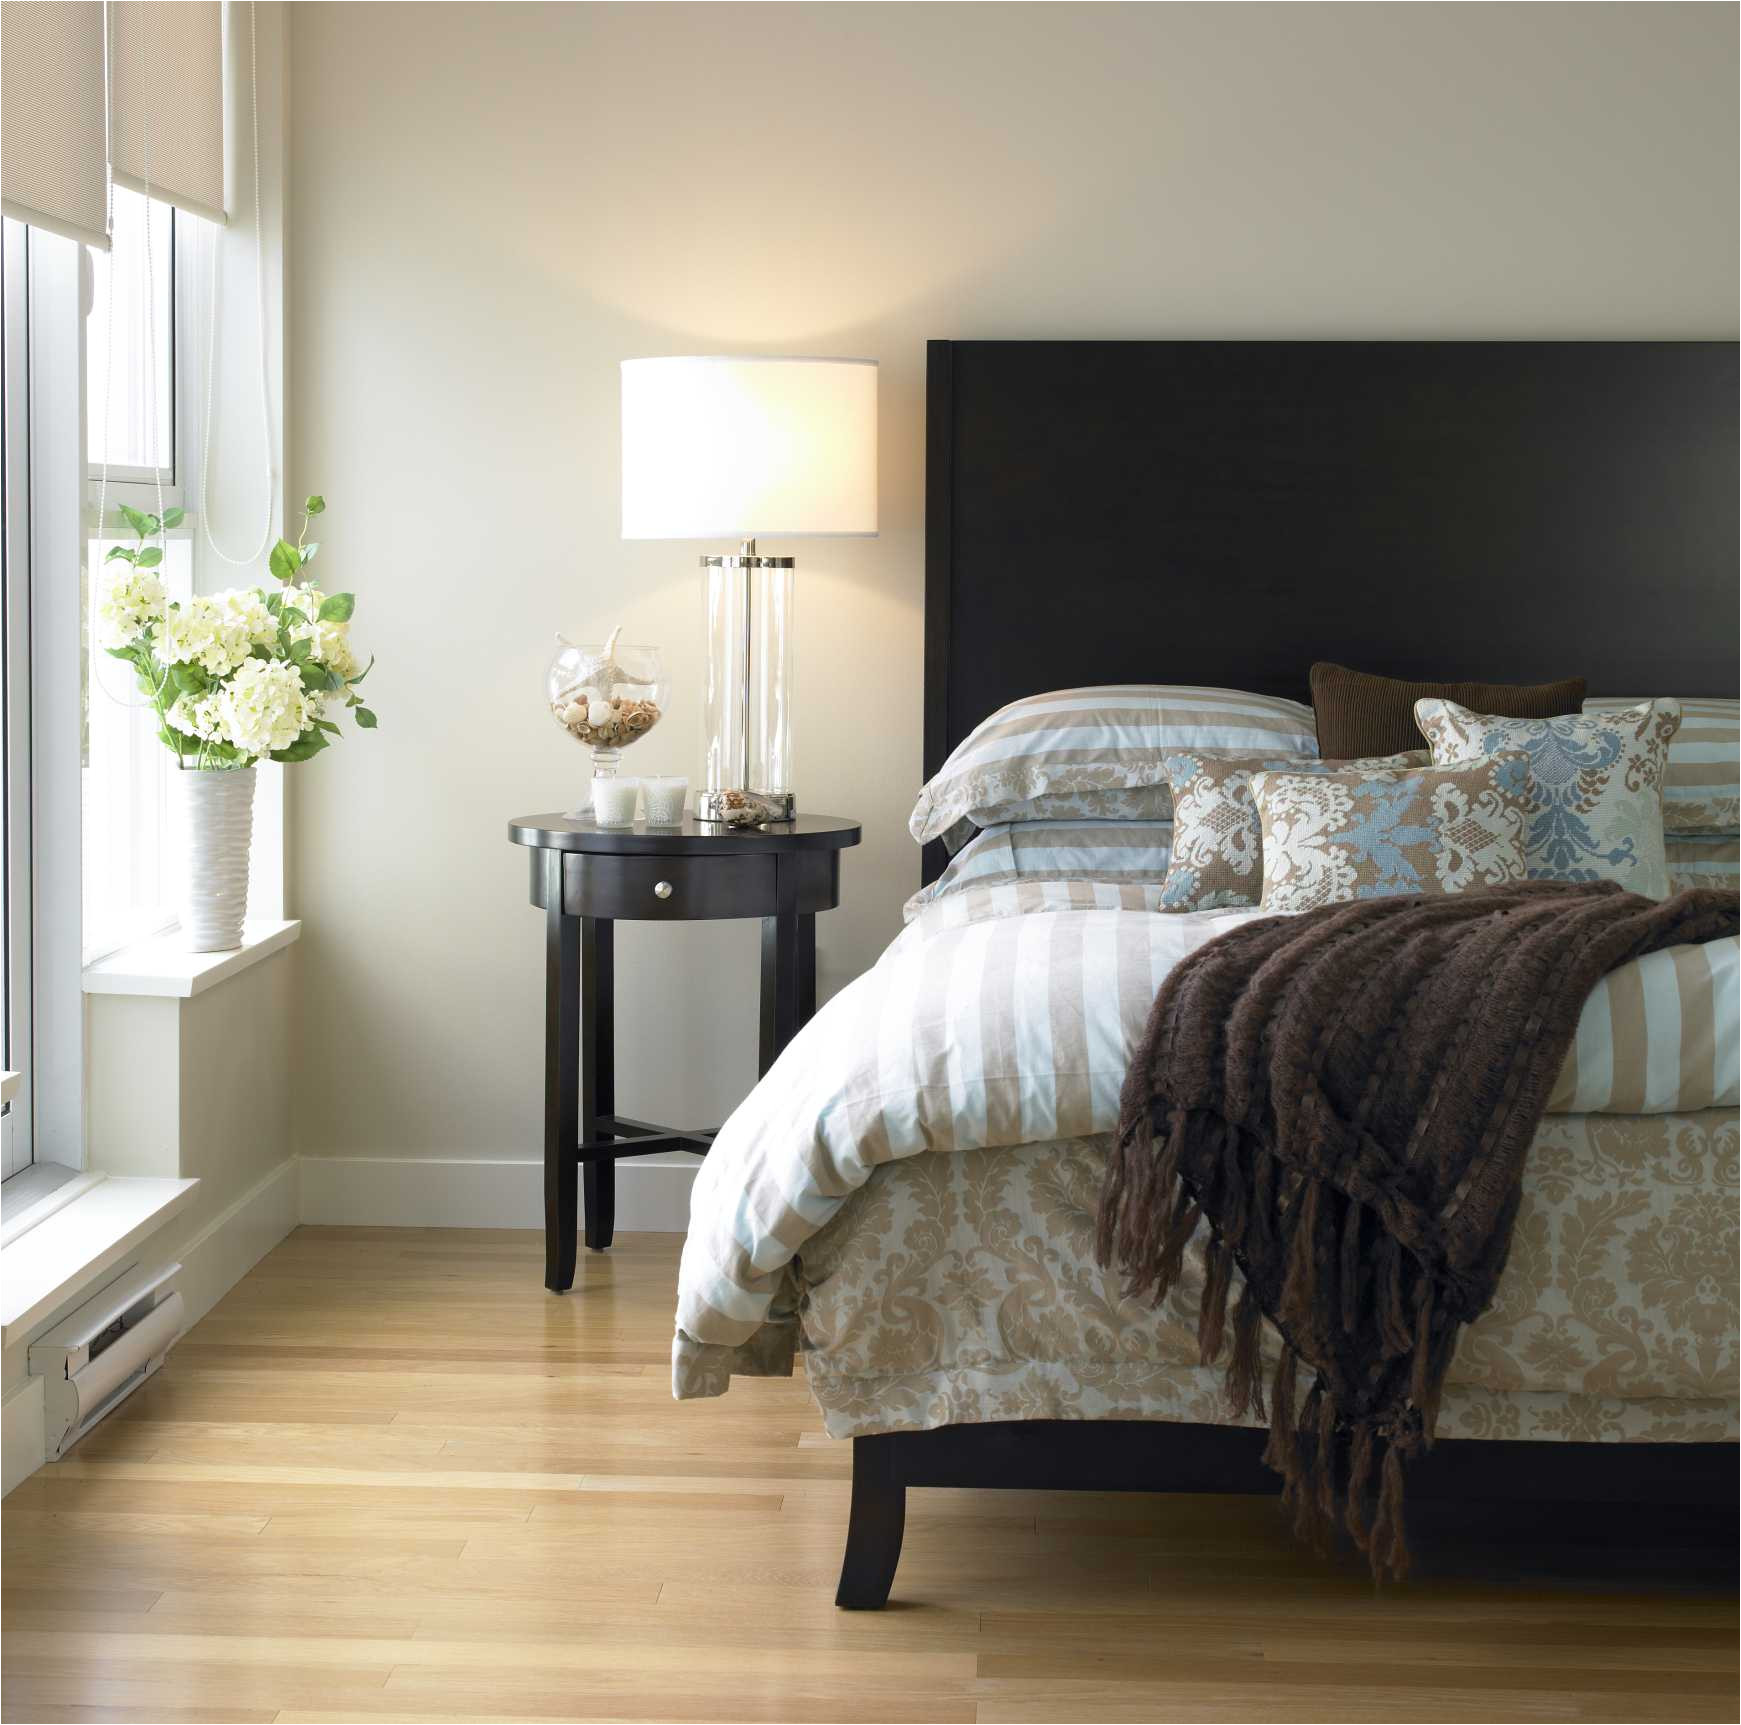 Benjamin Moore Balboa Mist Reviews top Neutral Paint Colors You Should Have In Your Home